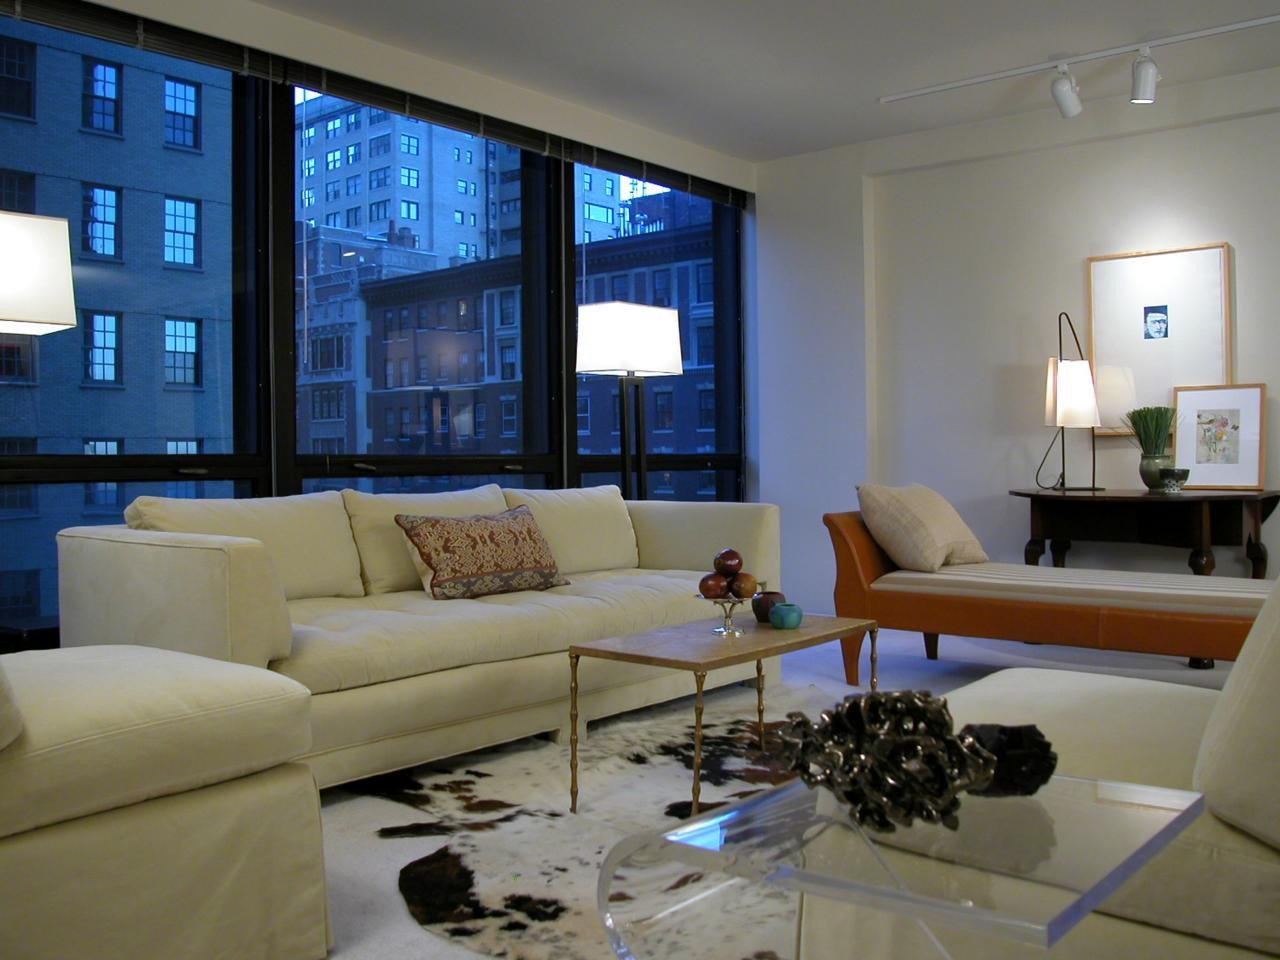 Contemporary Living Room Lights Beautiful Lighting Tips for Every Room